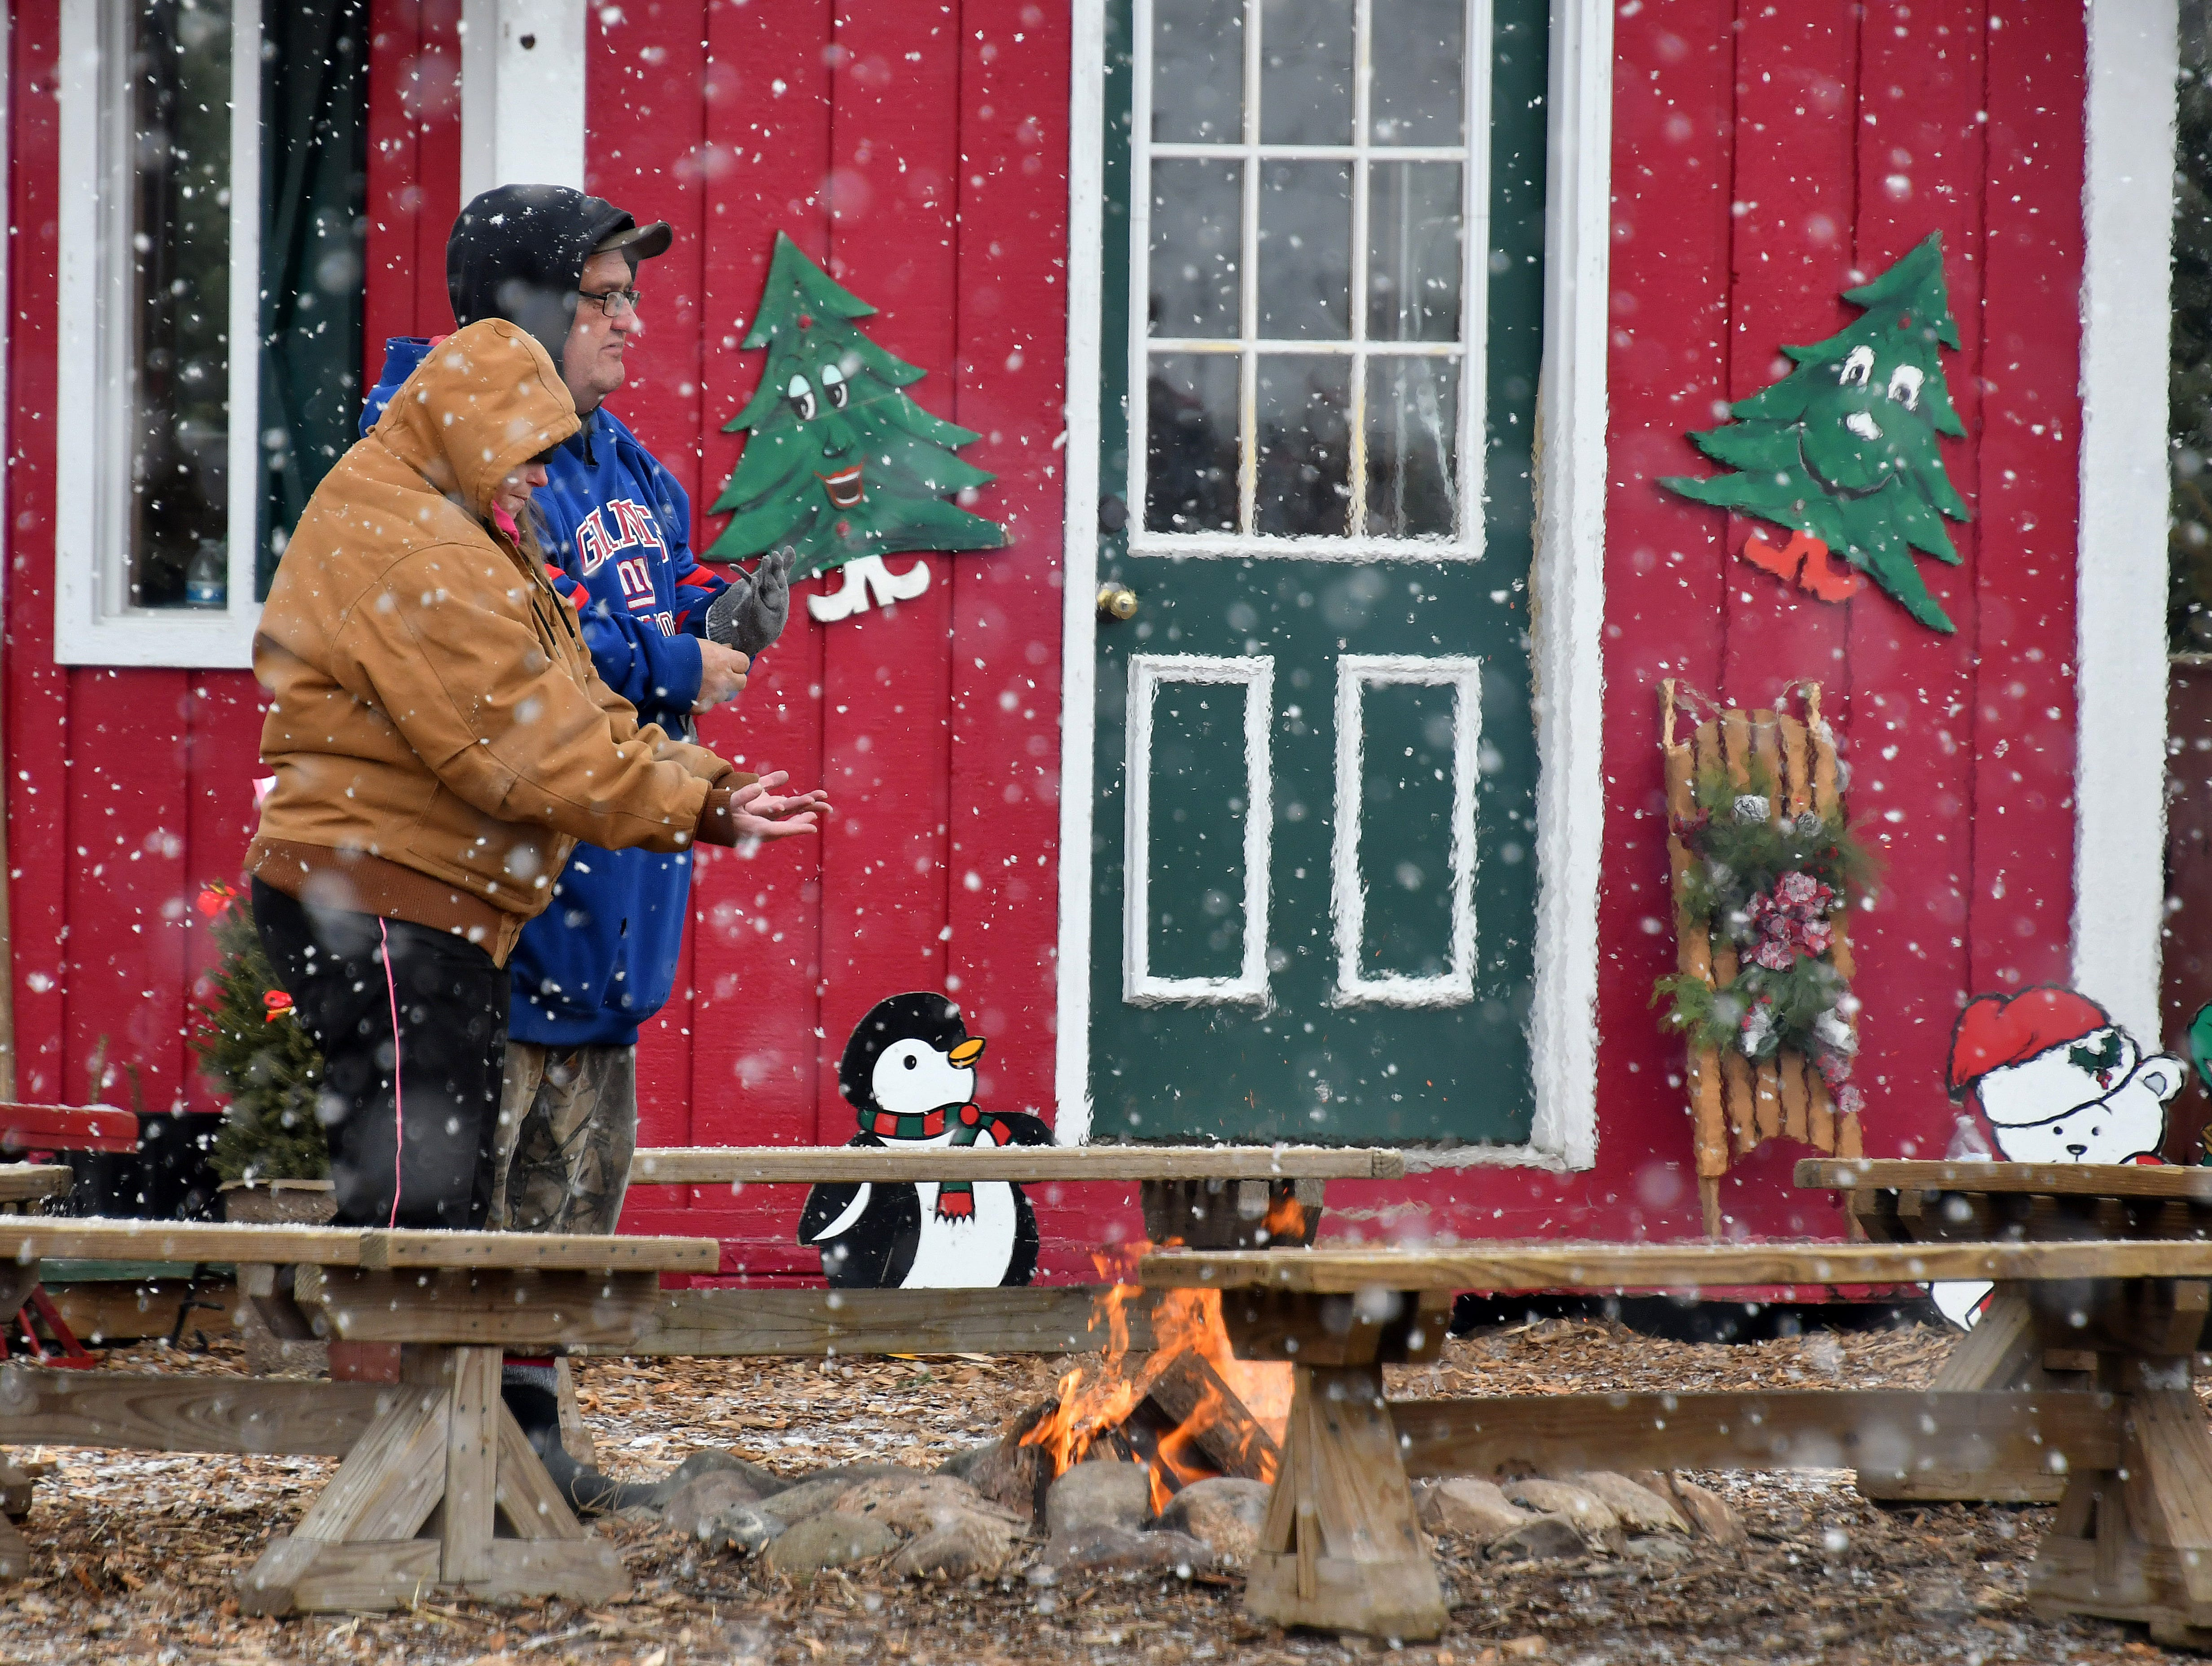 As the snow falls, a warming fire is kept burning for anyone who needs a little heat at the Kluck family Christmas Tree Village, while Christmas music plays from the building in the background.